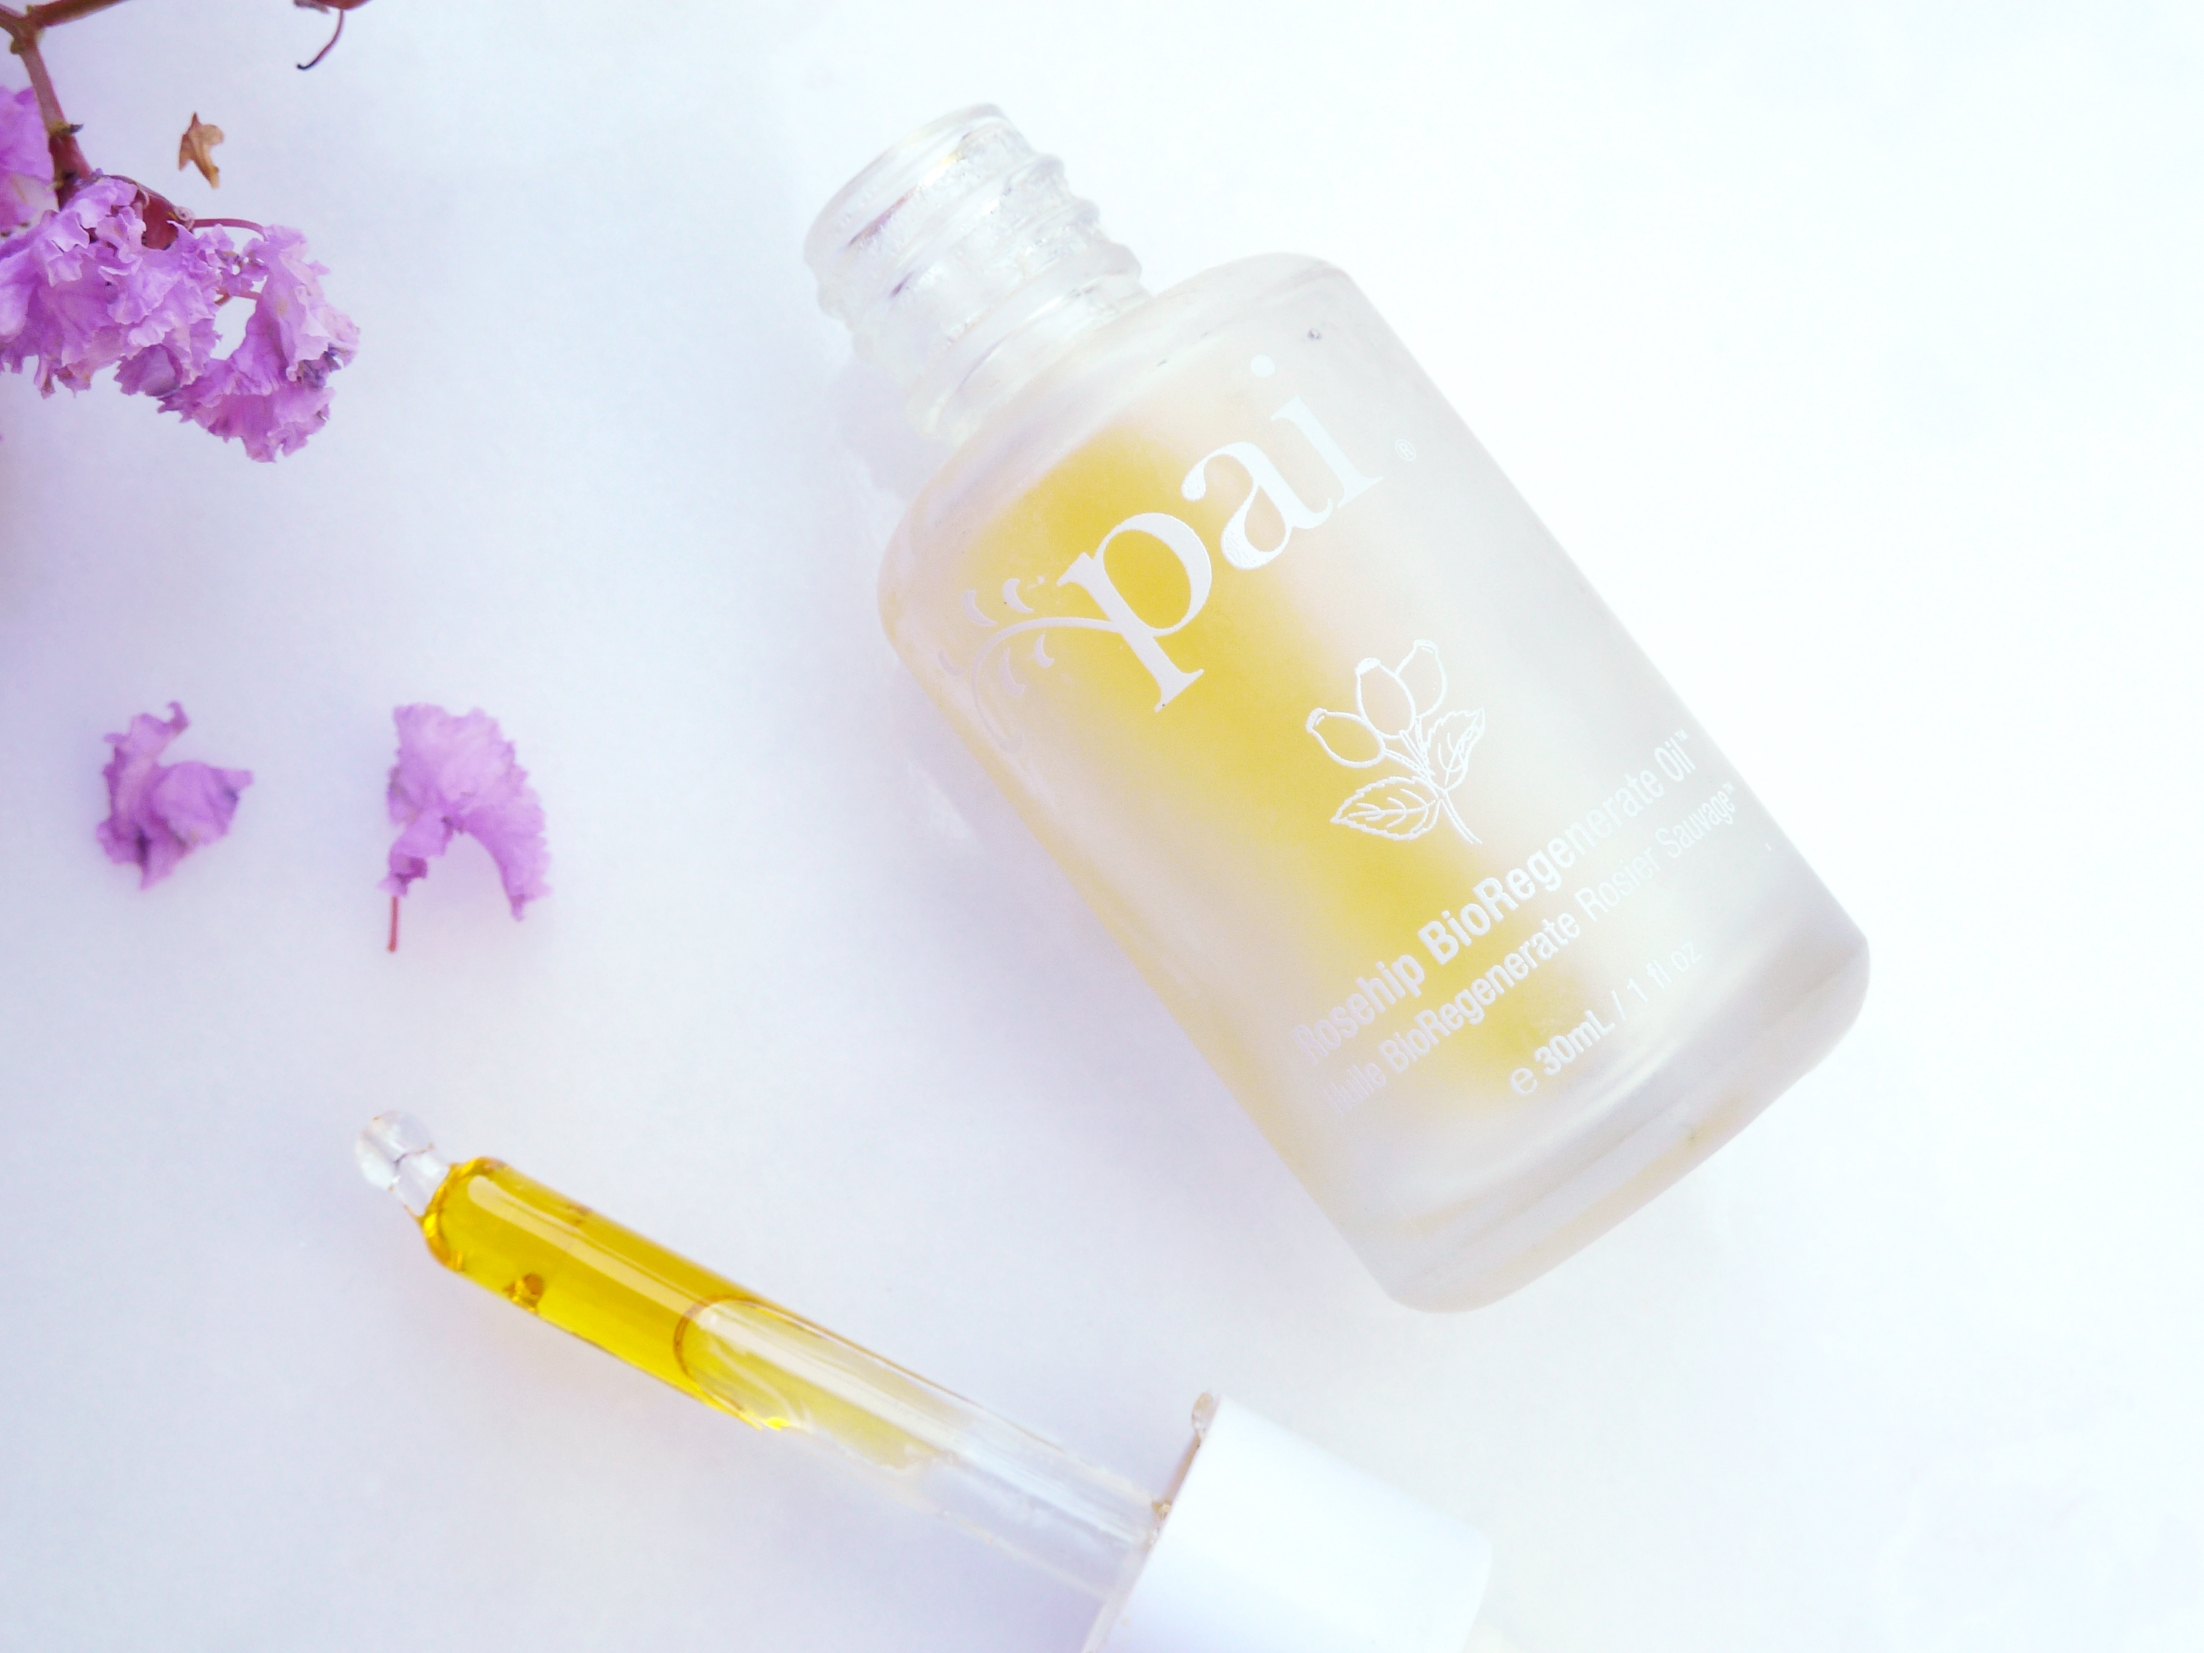 Pai rosehip oil and why it didn't work for me